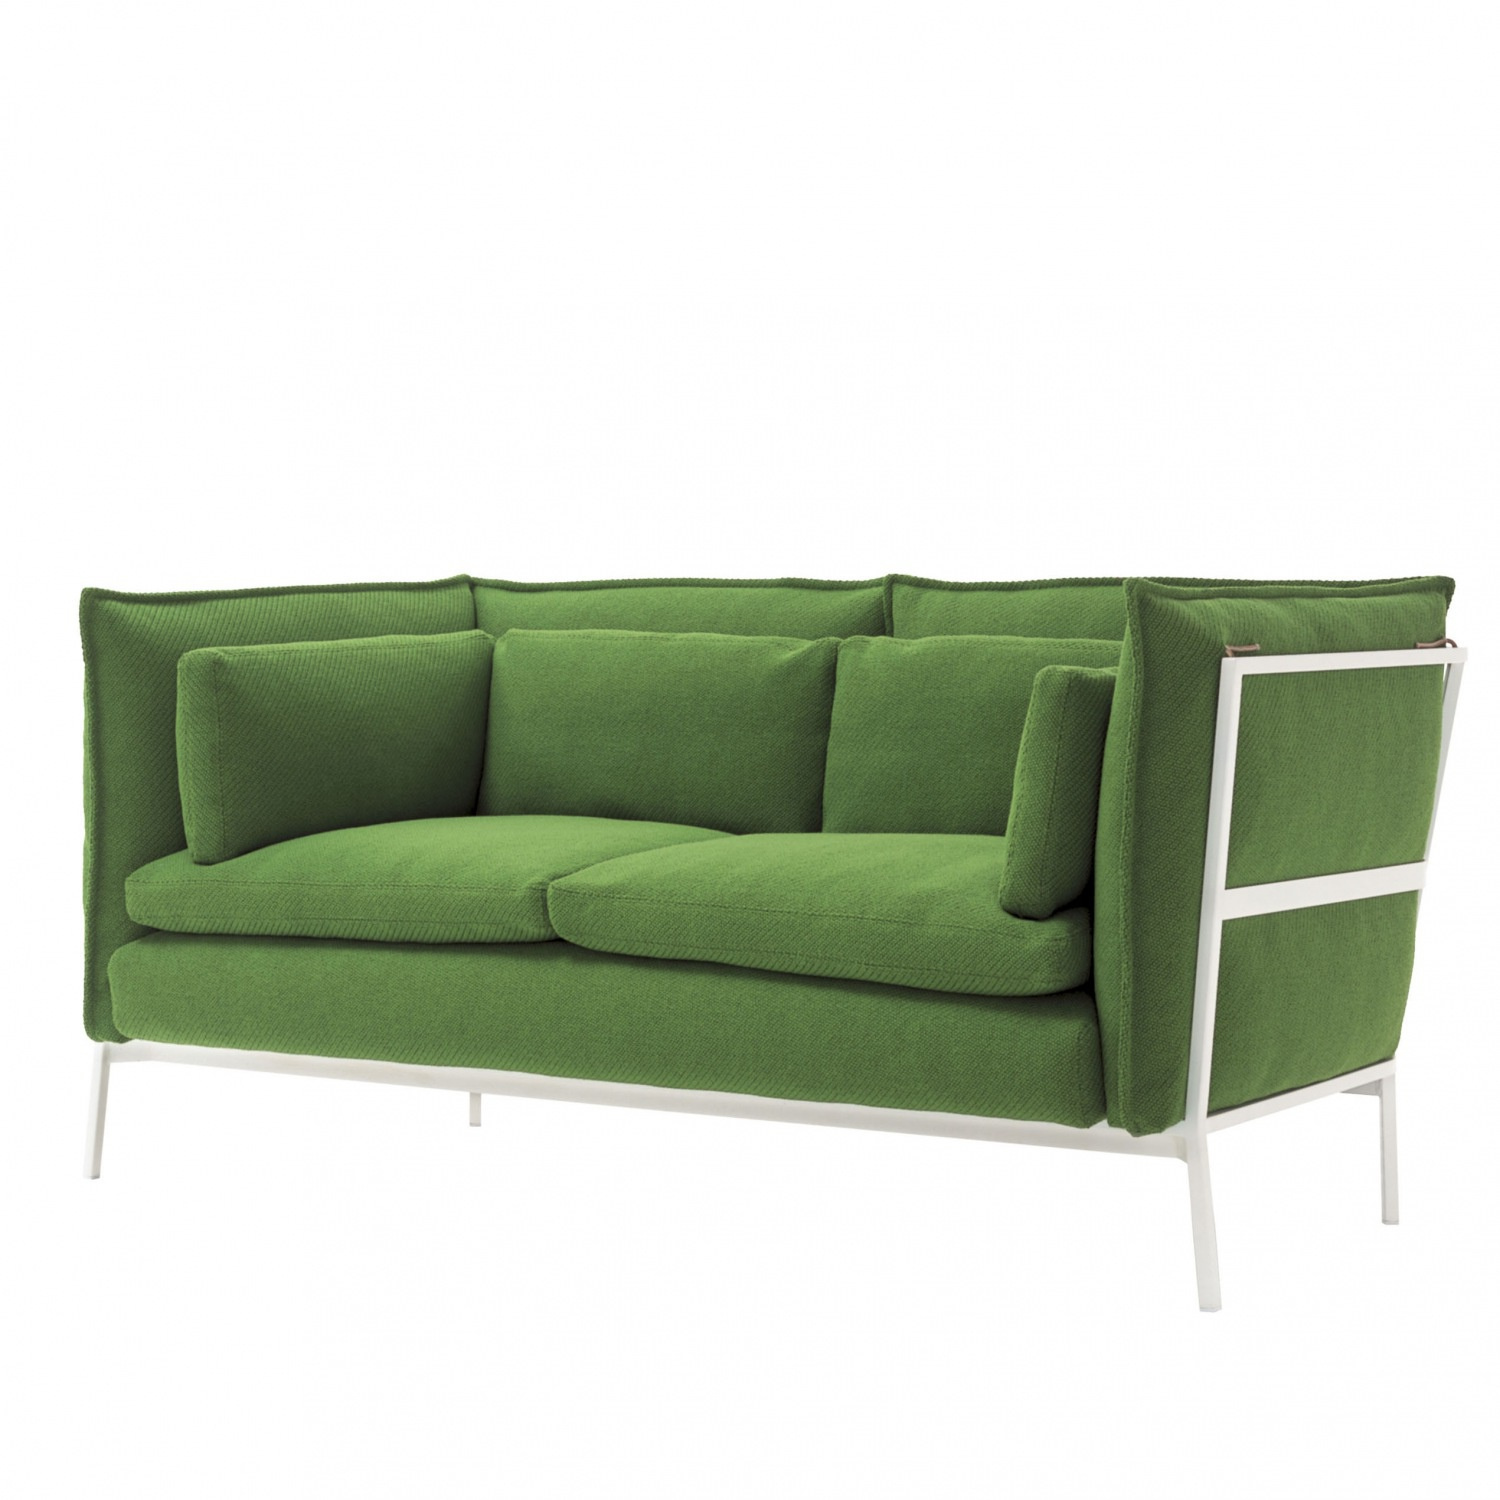 Elegant Italian sofas presented in the catalog of sofas on our